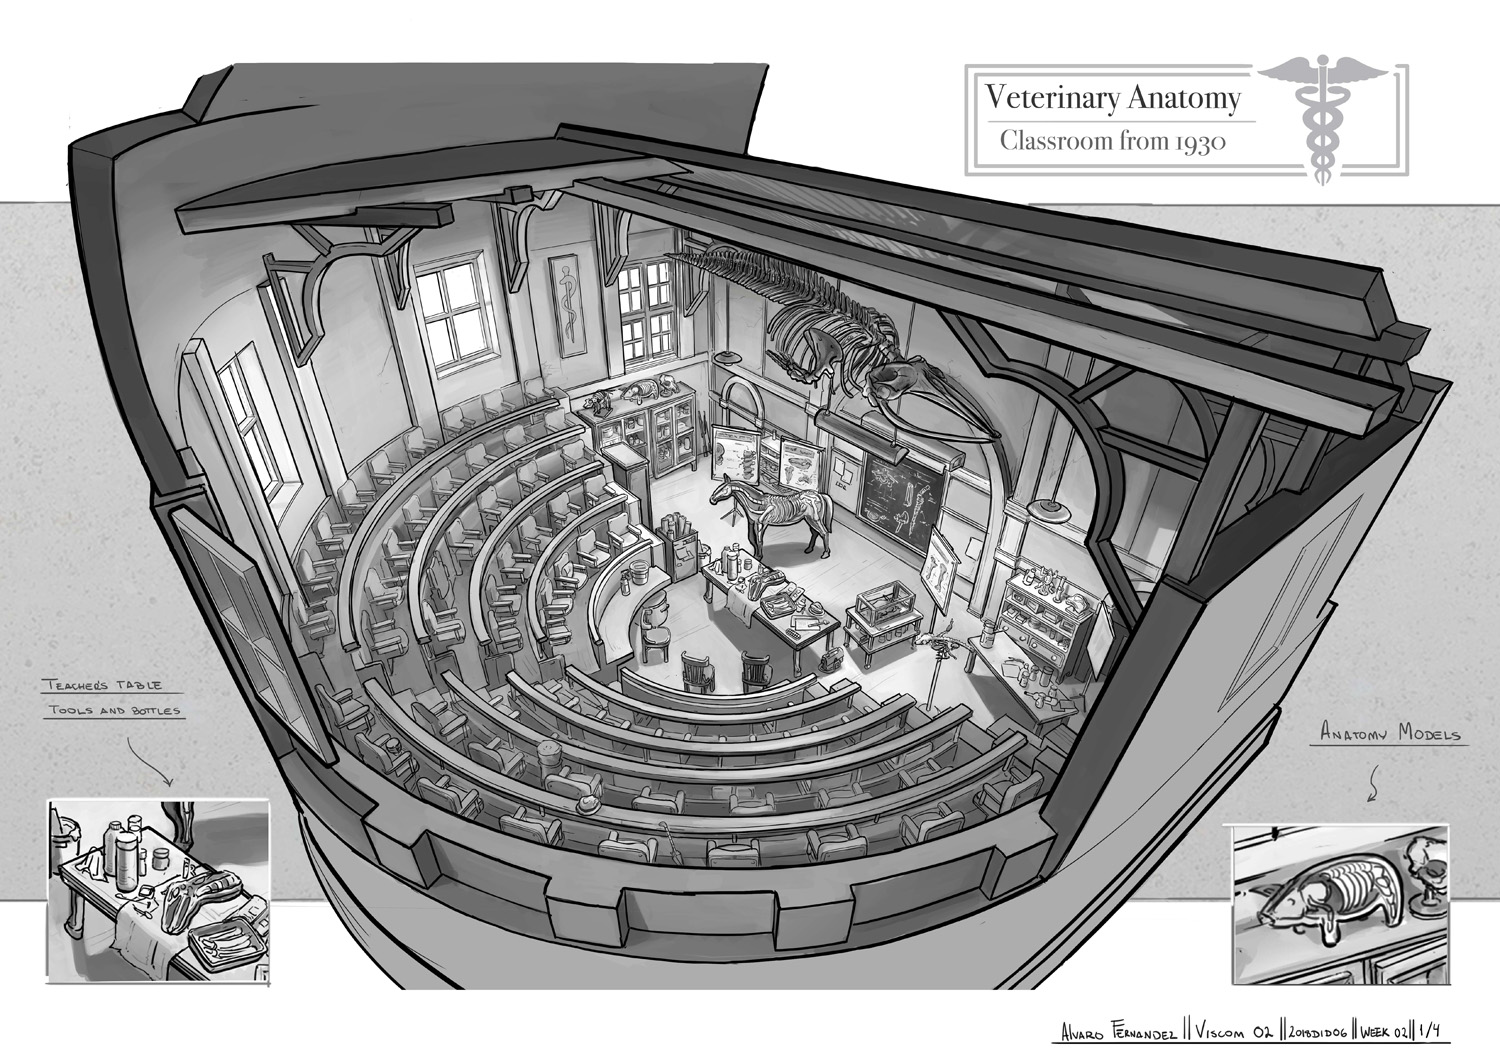 Fzd School Of Design Stair Anatomy Drawing Elements Parts Illustration Diagram For Students Learning To